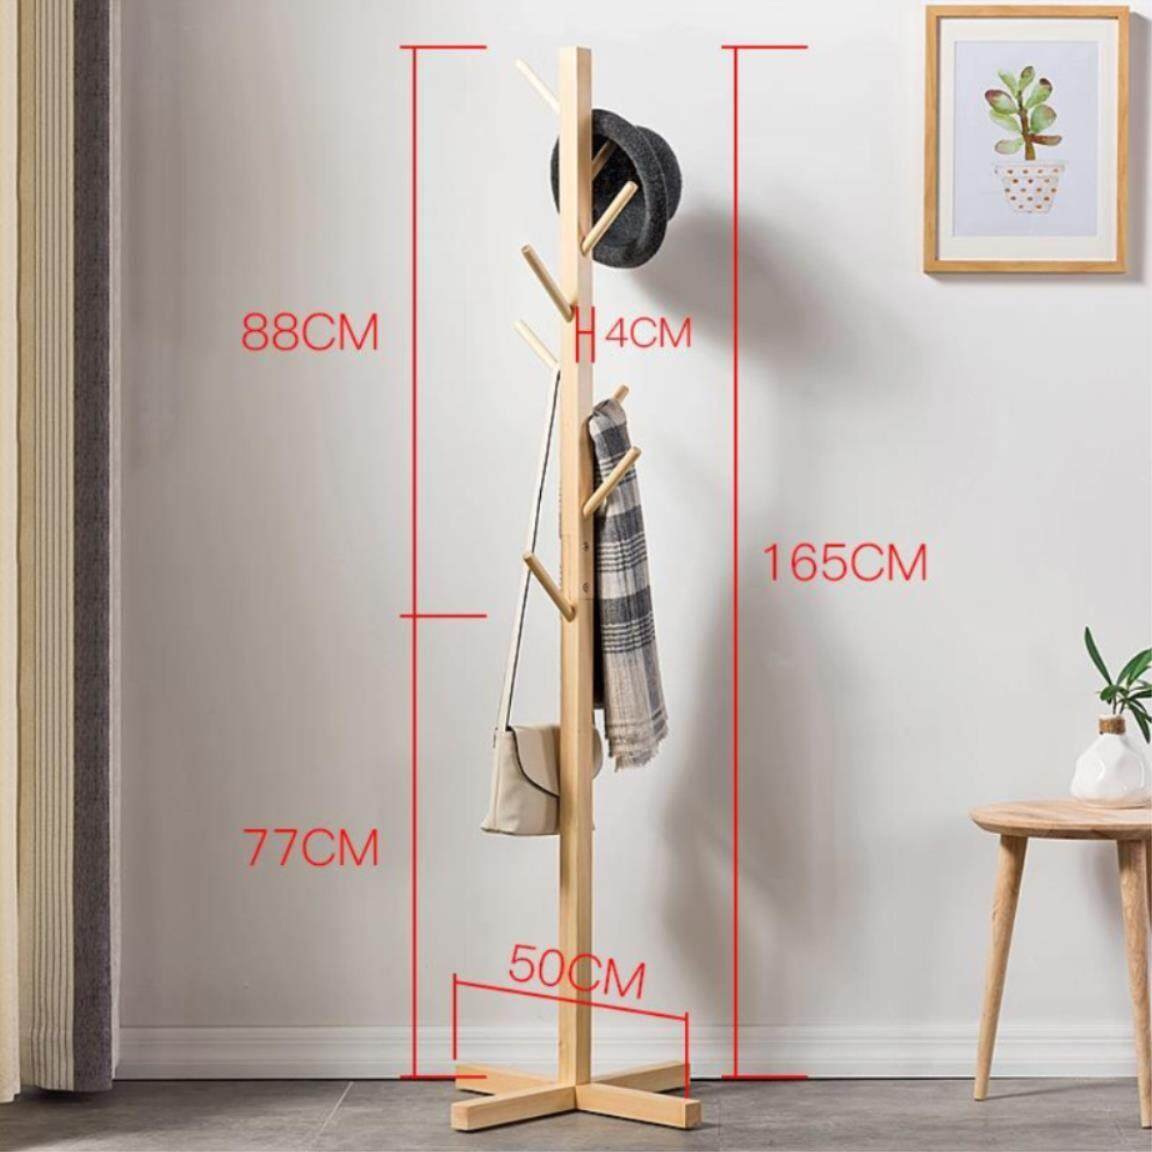 Premium Wooden 8 Hooks Fashion Furniture Solid Wood Living Room Coat Rack Display Stands Hanging Scarves Hats Bags Clothes Shelf